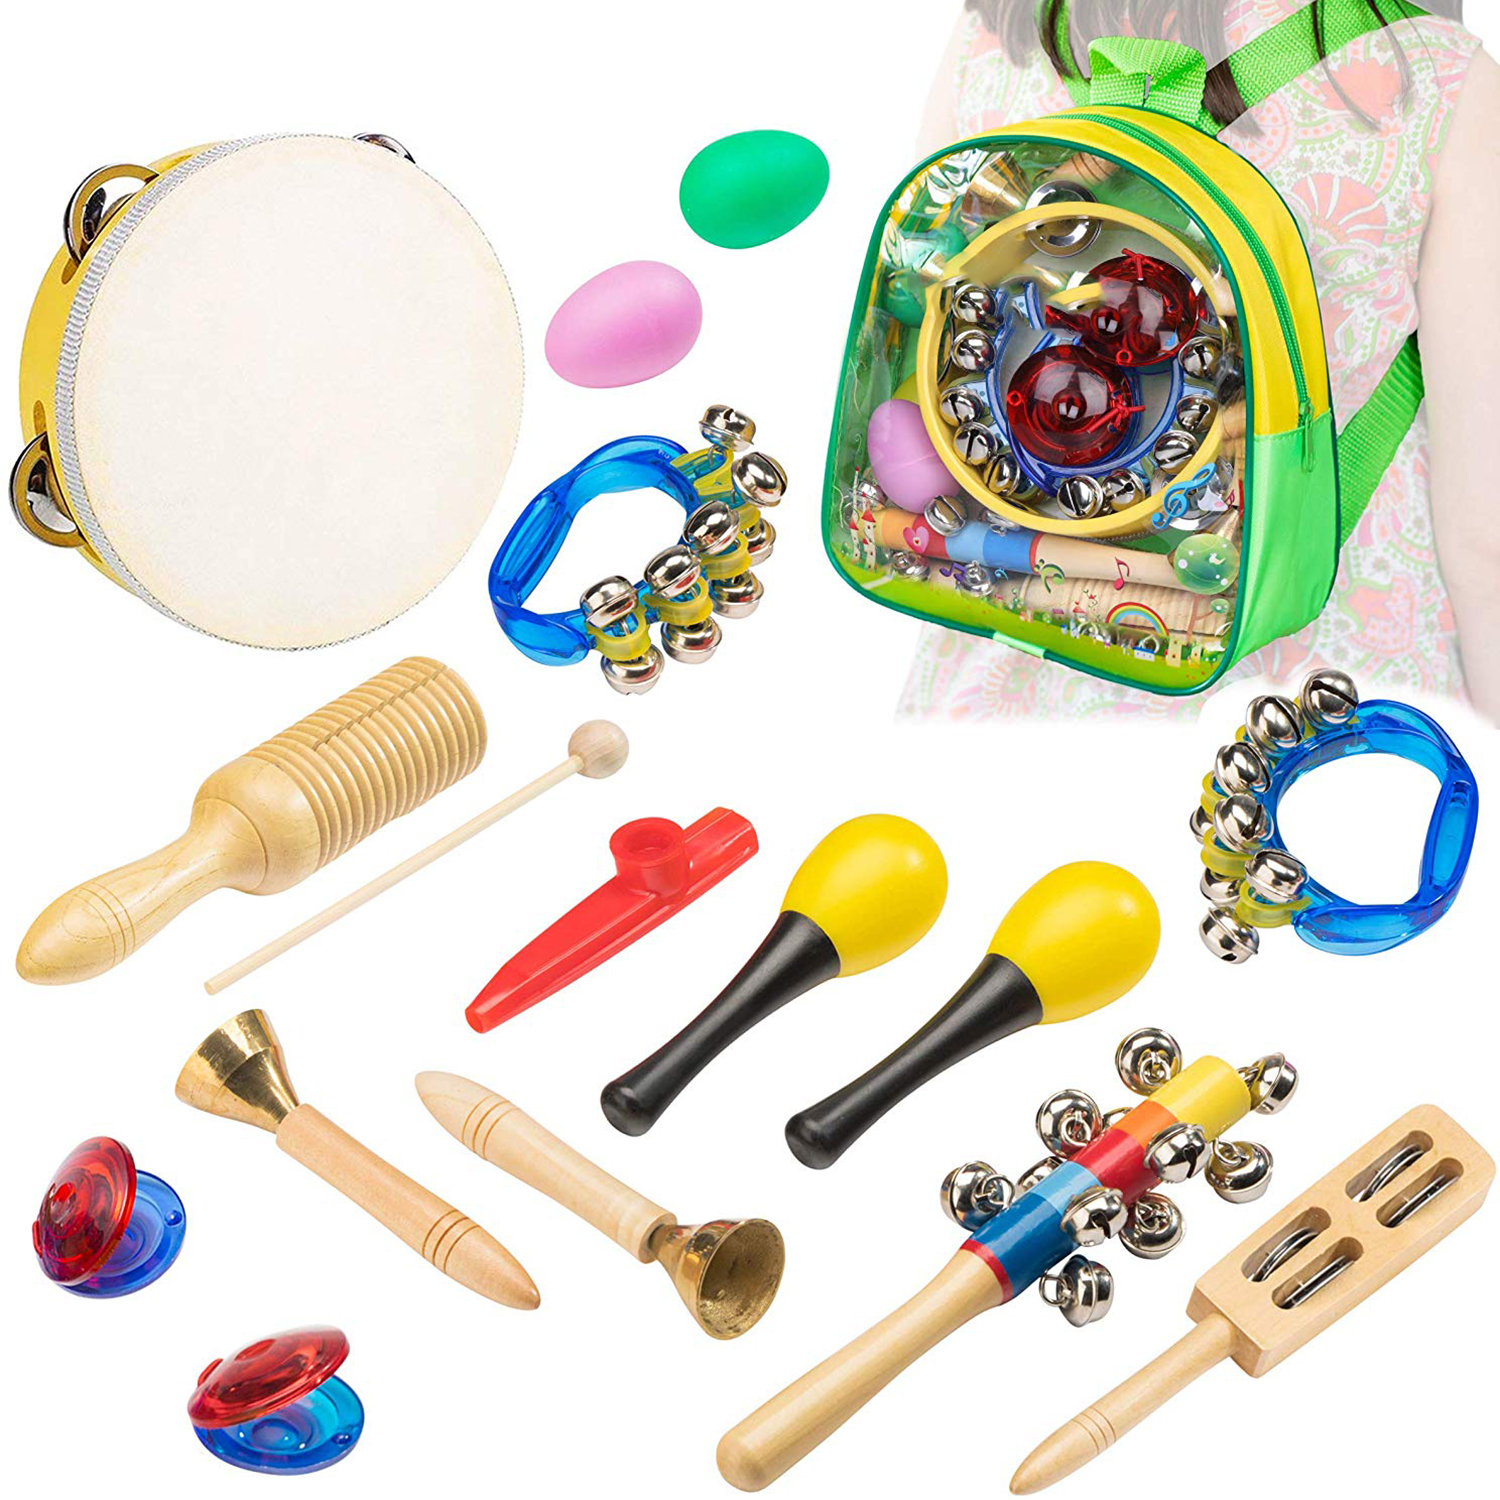 Musical Instrument Toys for Kids - Percussion Set for Toddlers Preschool Educational Learning Musical Toys gifts for children